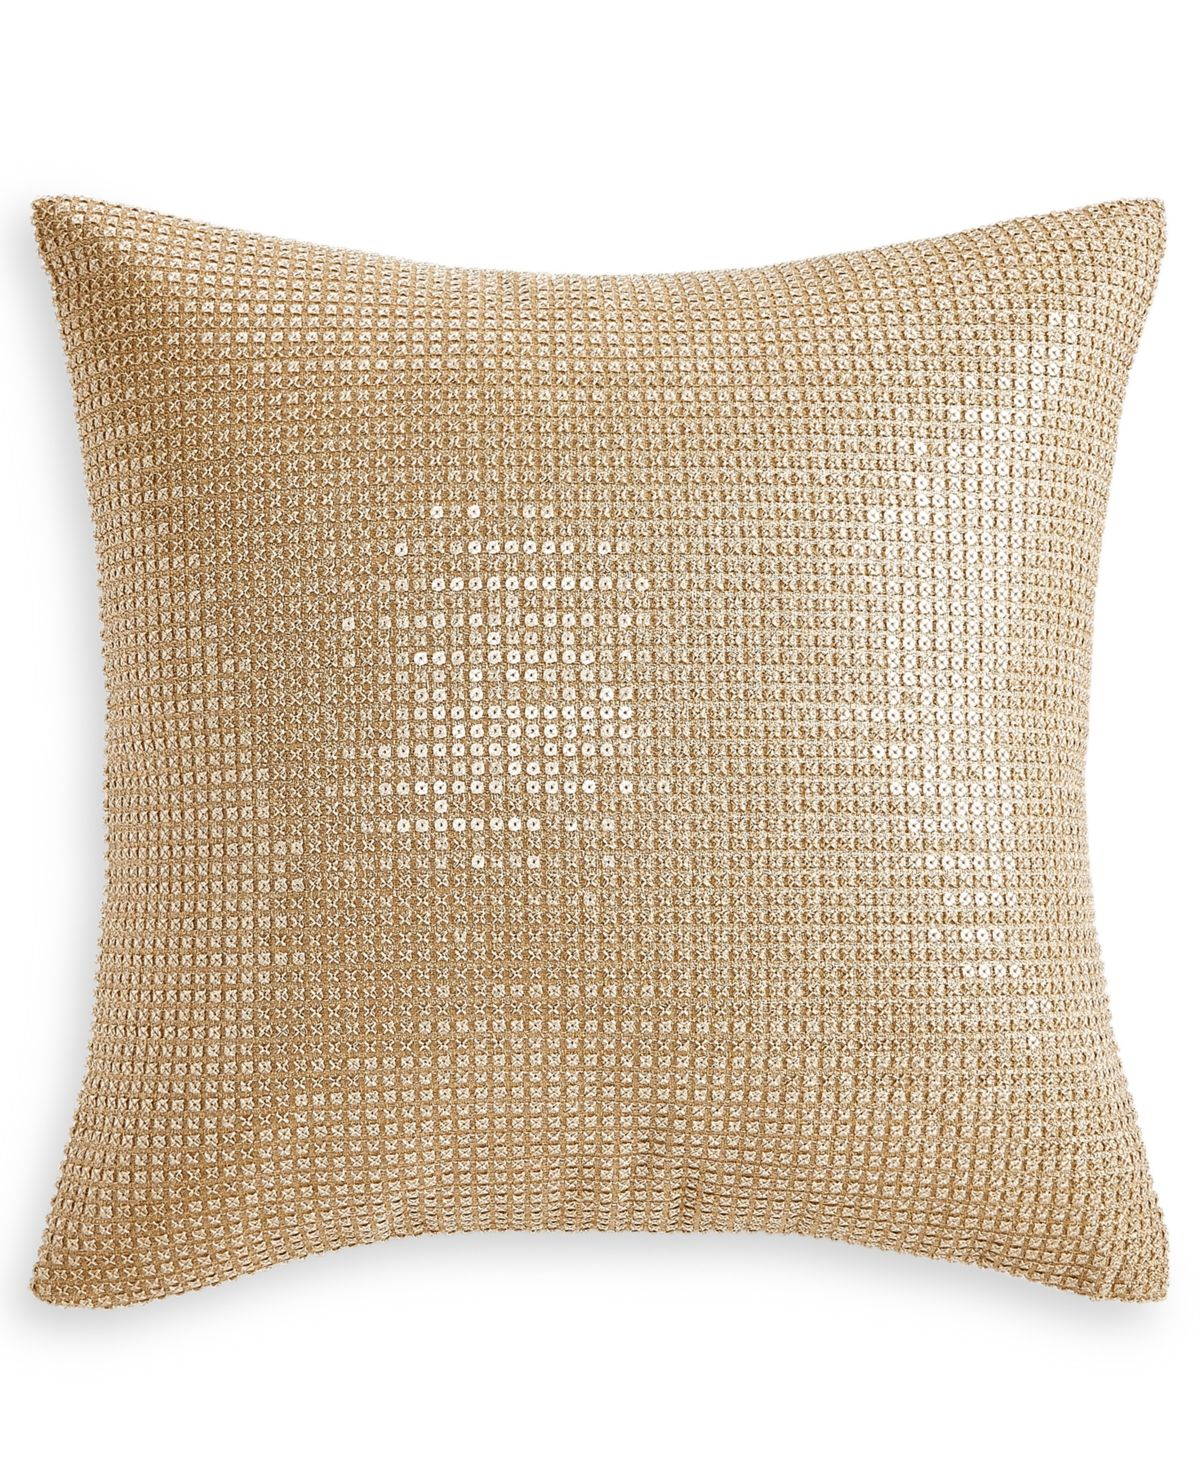 Hotel Collection Metallic Stone Bedding Collection Created For